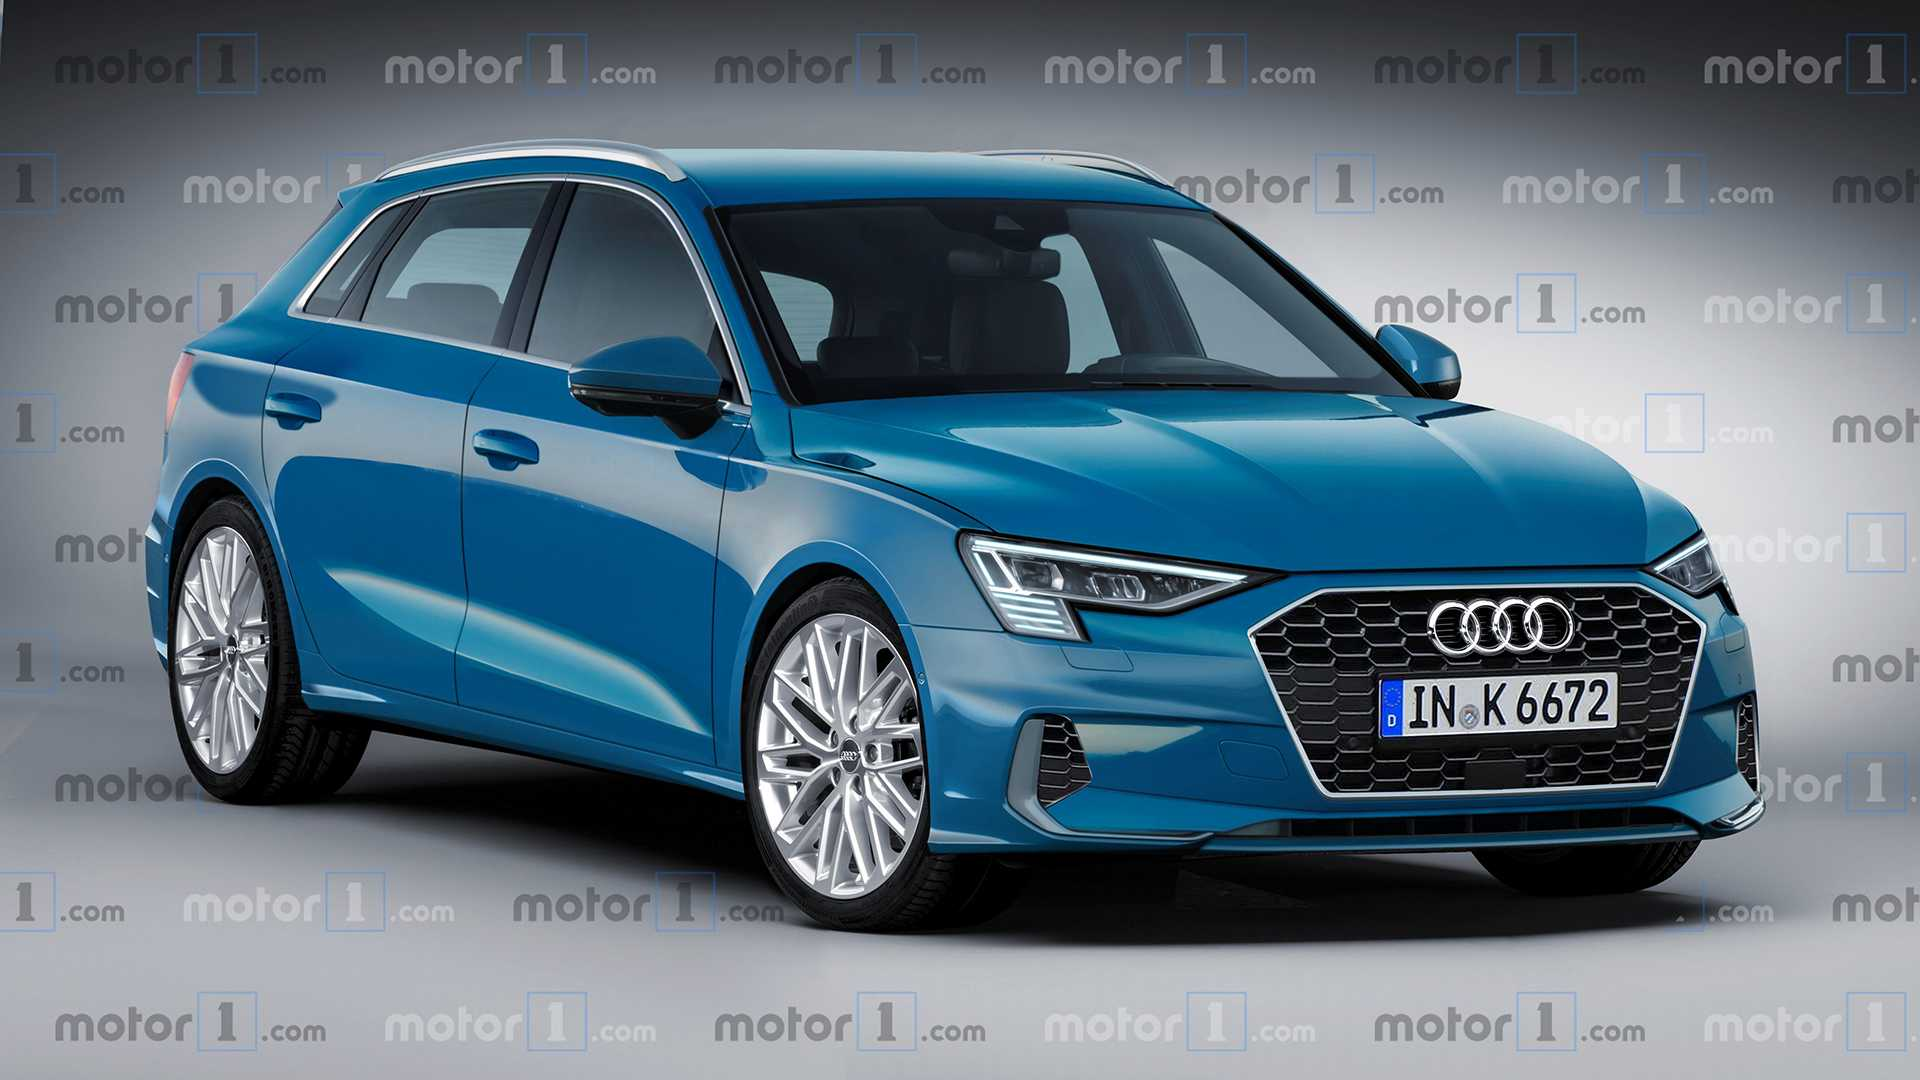 A3 Interieur 2020 Audi A3 Sportback Render Takes Off The Camouflage